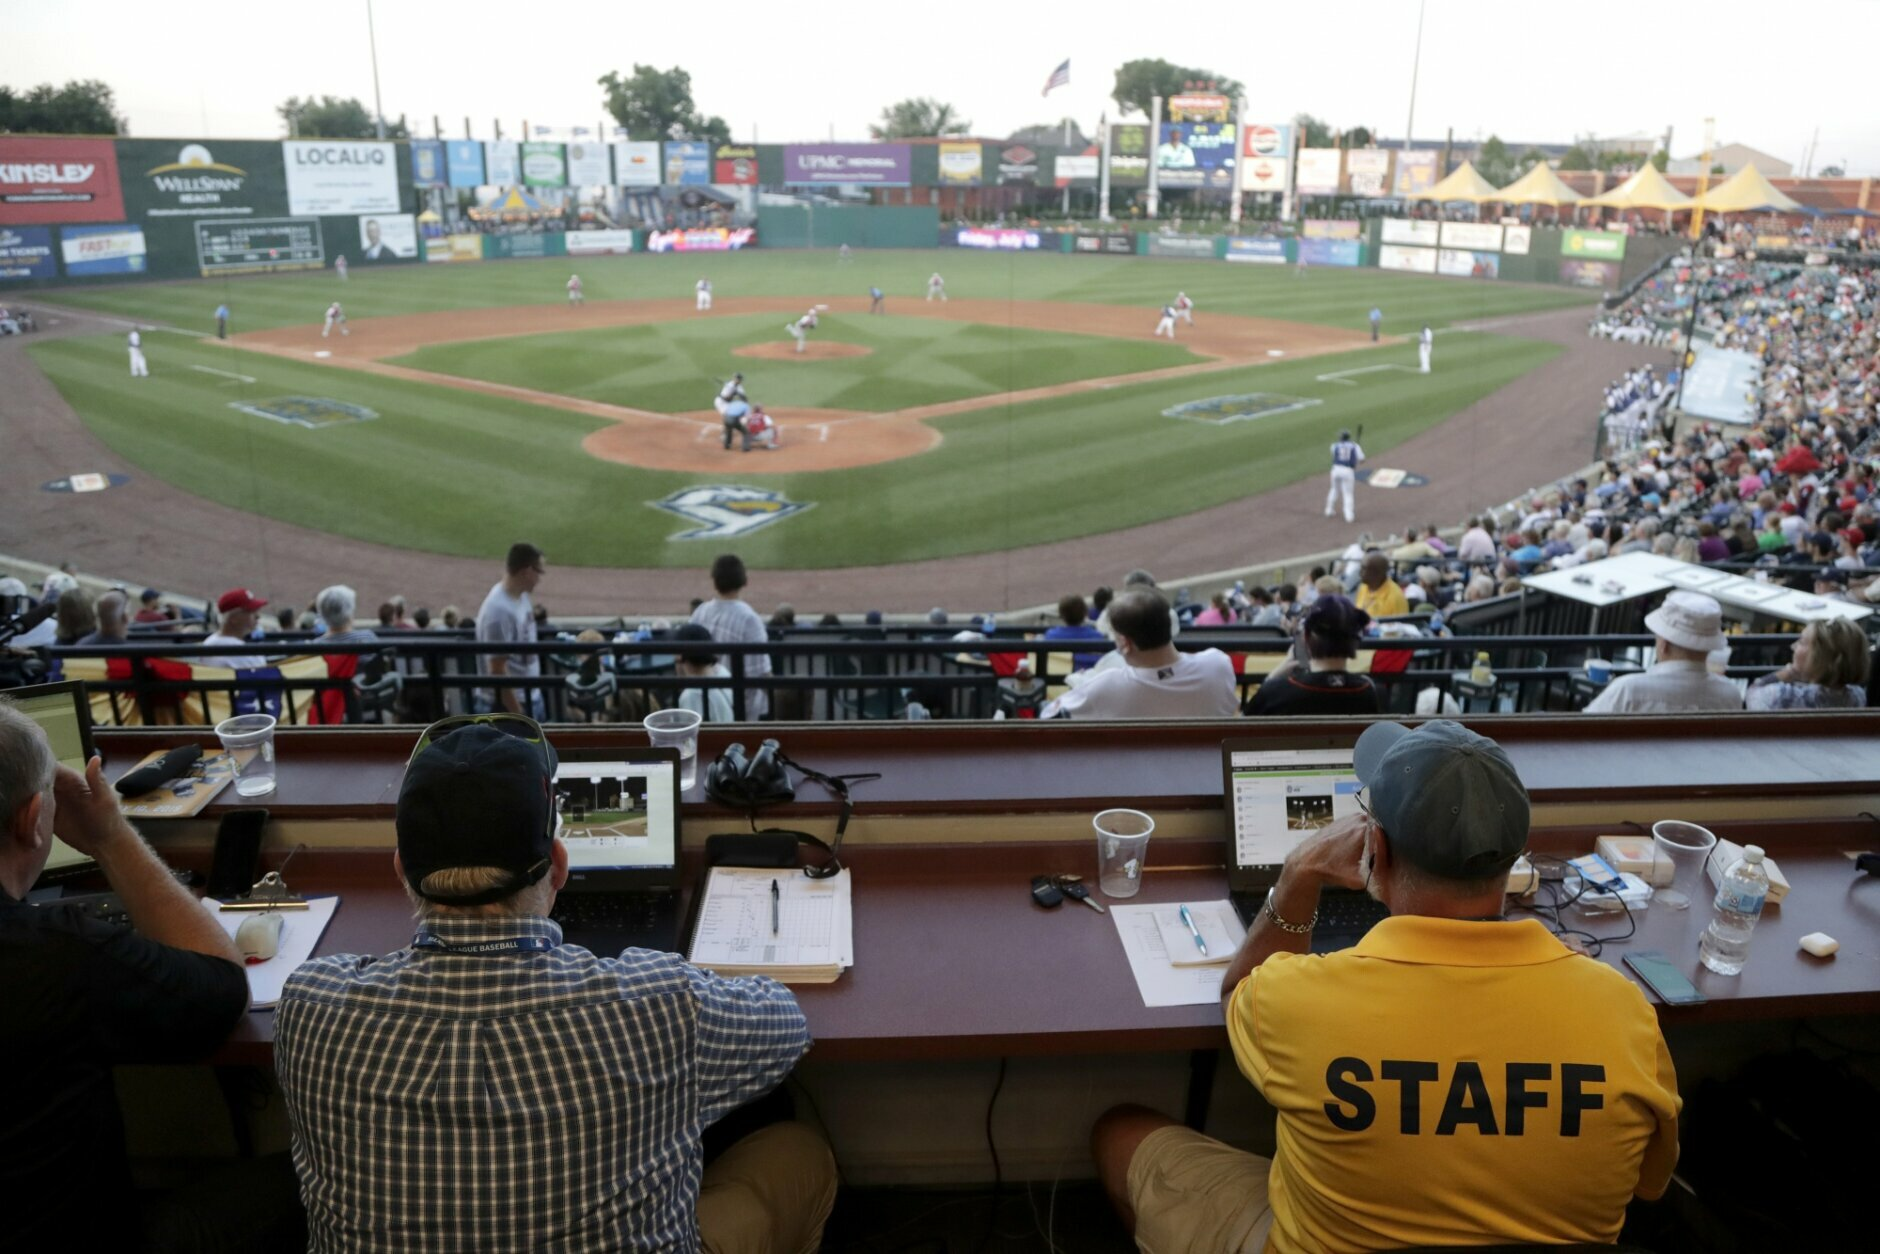 """<p><strong>Will MLB really kill the minor leagues?</strong></p> <p>Despite swimming in record revenues while watching player payrolls fall, Major League Baseball is proposing cutting a full quarter of its severely, intentionally underpaid minor league workforce — <a href=""""https://wtop.com/mlb/2019/12/sunset-in-hagerstown-city-team-fight-for-minor-league-survival/"""" target=""""_blank"""" rel=""""noopener"""">including eliminating the Hagerstown Suns and Frederick Keys</a> — all in the name of making even more money. <a href=""""https://wtop.com/mlb/2019/12/milb-reduction-talks-reverberate-throughout-winter-meetings/"""" target=""""_blank"""" rel=""""noopener"""">As talks have escalated</a>, so has the rhetoric from the commissioner's office, threatening to walk away from 100 years of shared prosperity altogether. The two sides have until September before their current deal expires, but the longer things go without a viable agreement, the worse things will get.</p>"""